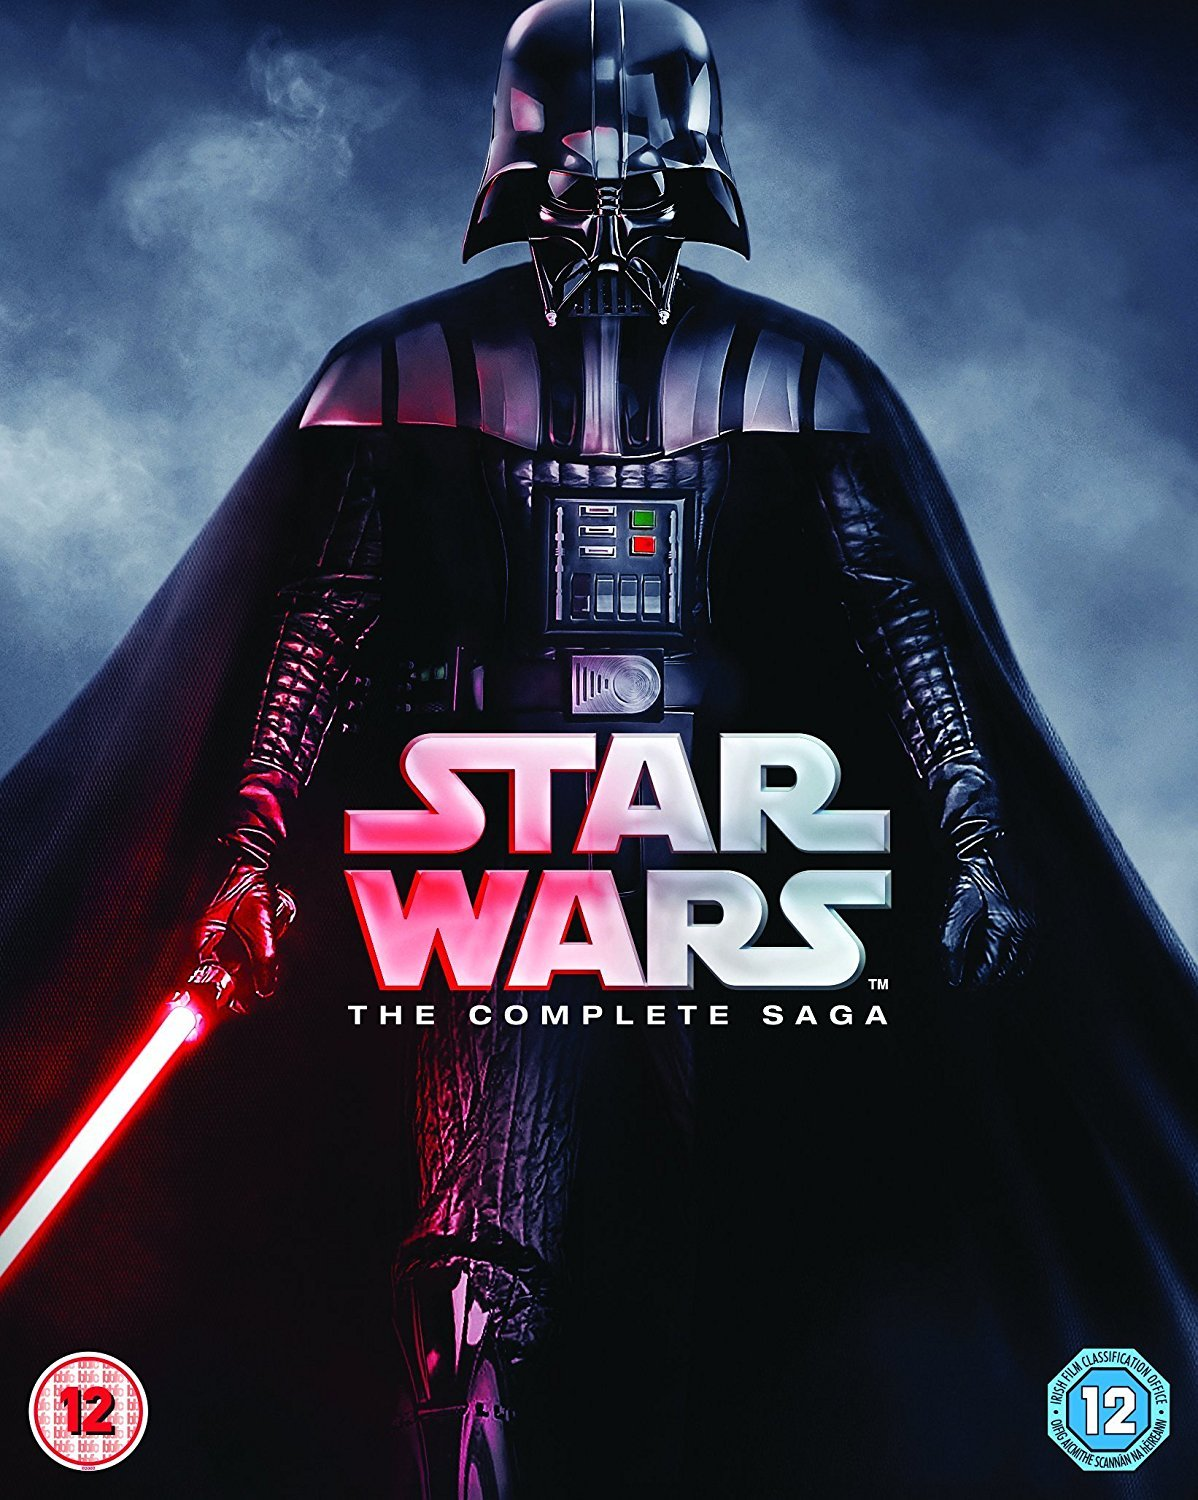 Star Wars - The Complete Blu-ray Saga Dealing full price reduction Lowest price challenge